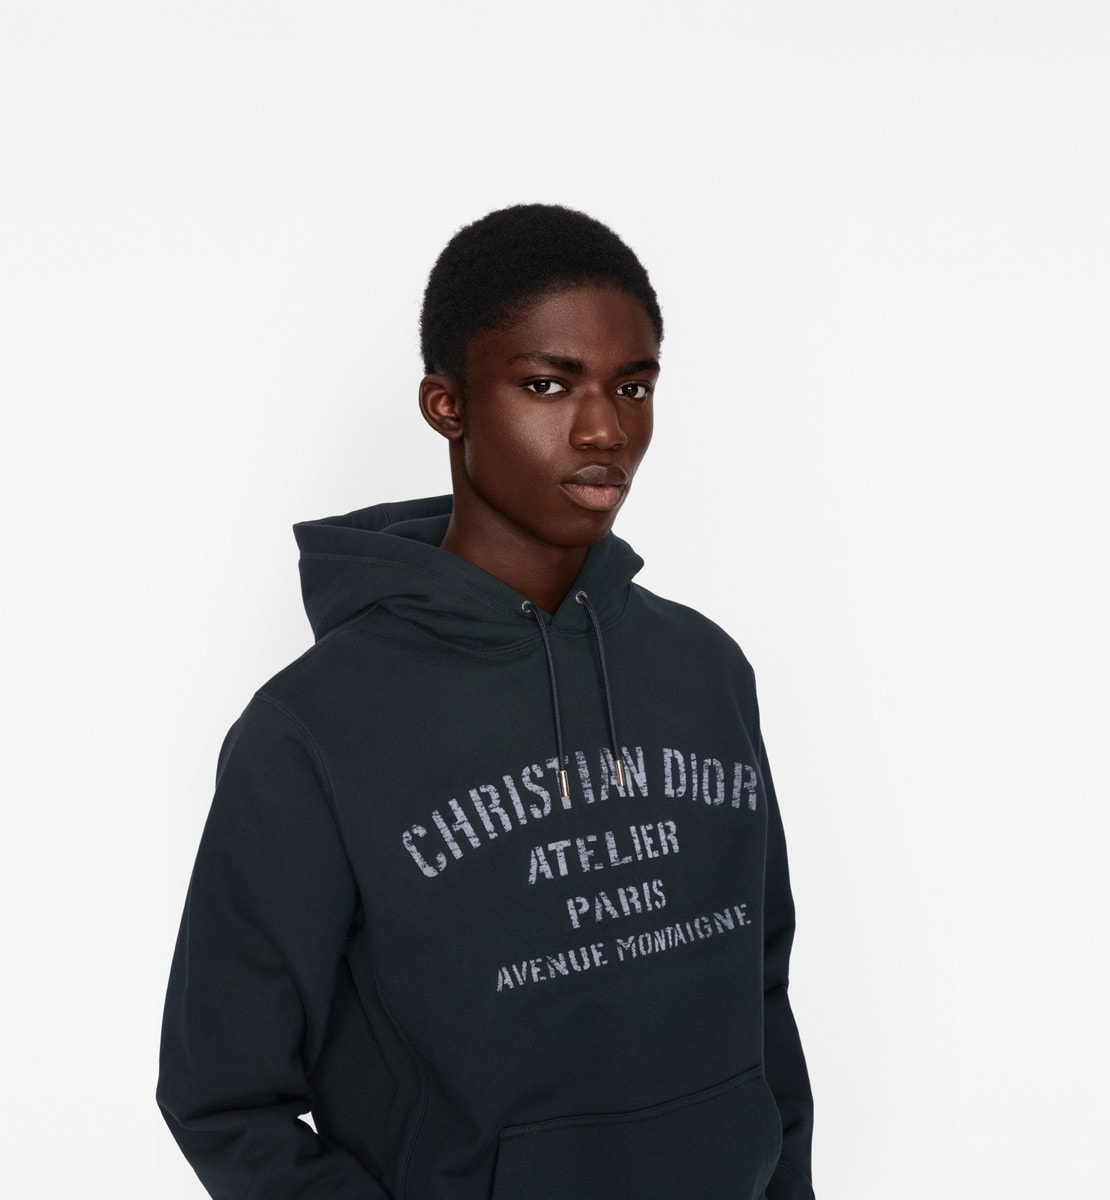 Oversized 'Christian Dior Atelier' Hooded Sweatshirt